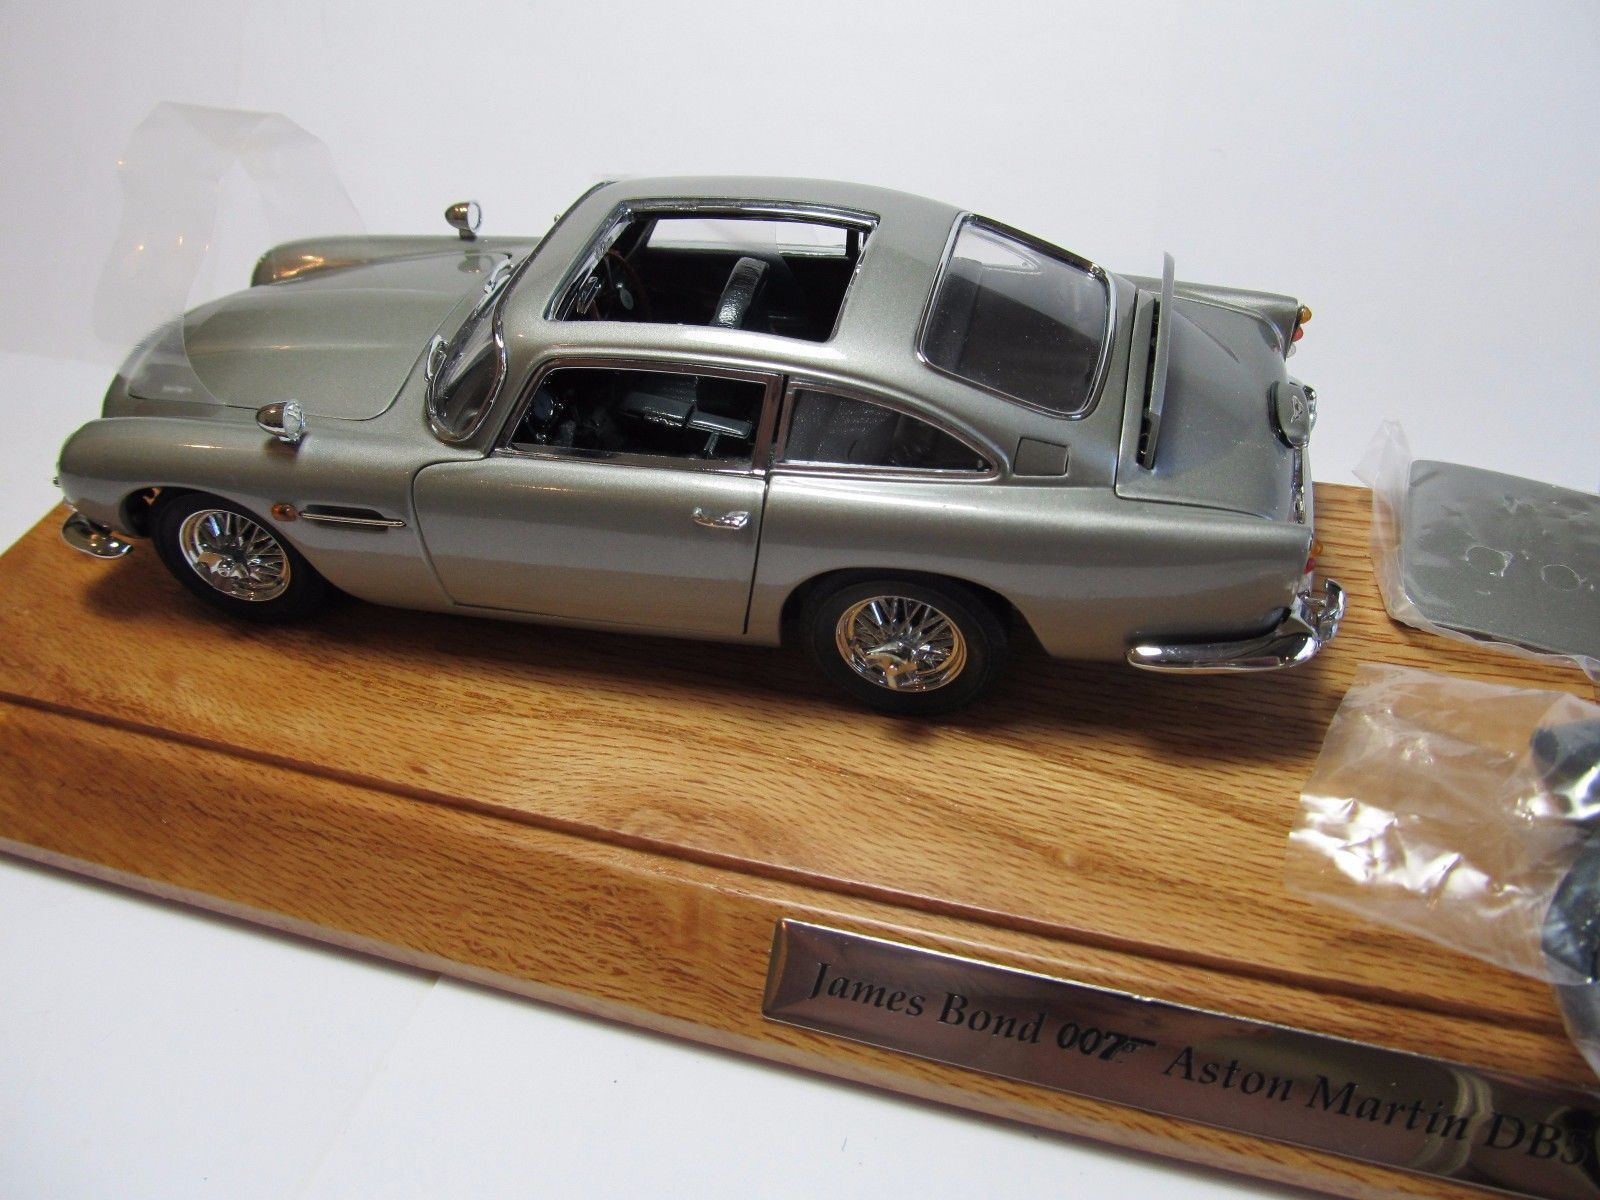 the james bond 007 aston martin db5 danbury mint & wood base c/o/a